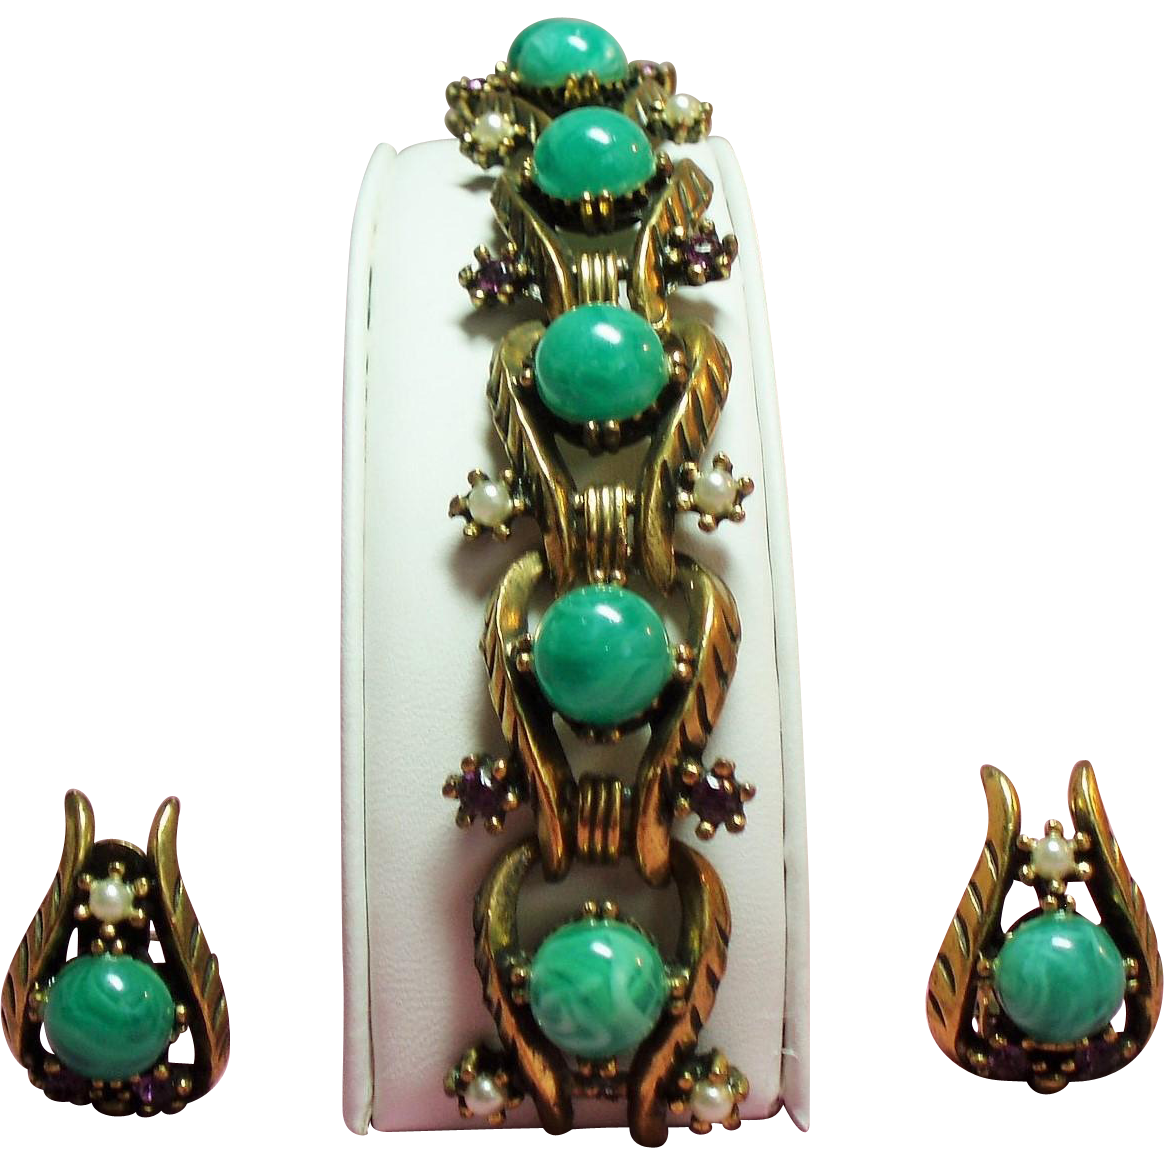 Vintage Peking Green Lucite Faux Pearl Purple Rhinestone Bracelet Earrings Demi Parure